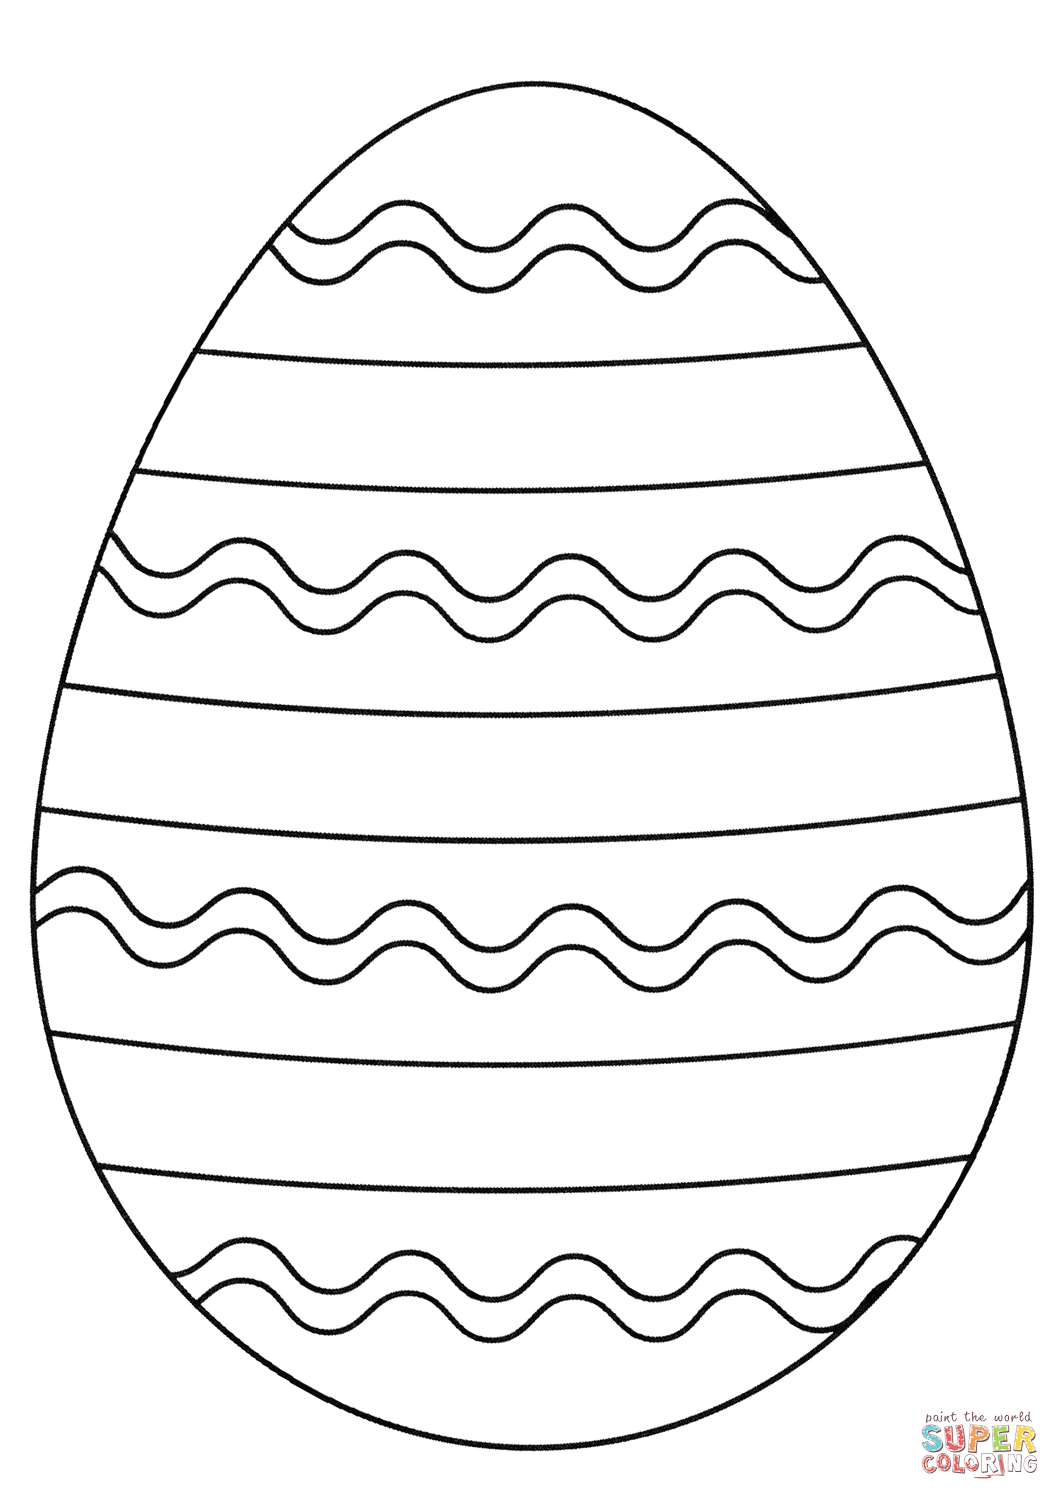 Easter Egg Super Coloring Egg Coloring Page Coloring Easter Eggs Easter Egg Coloring Pages